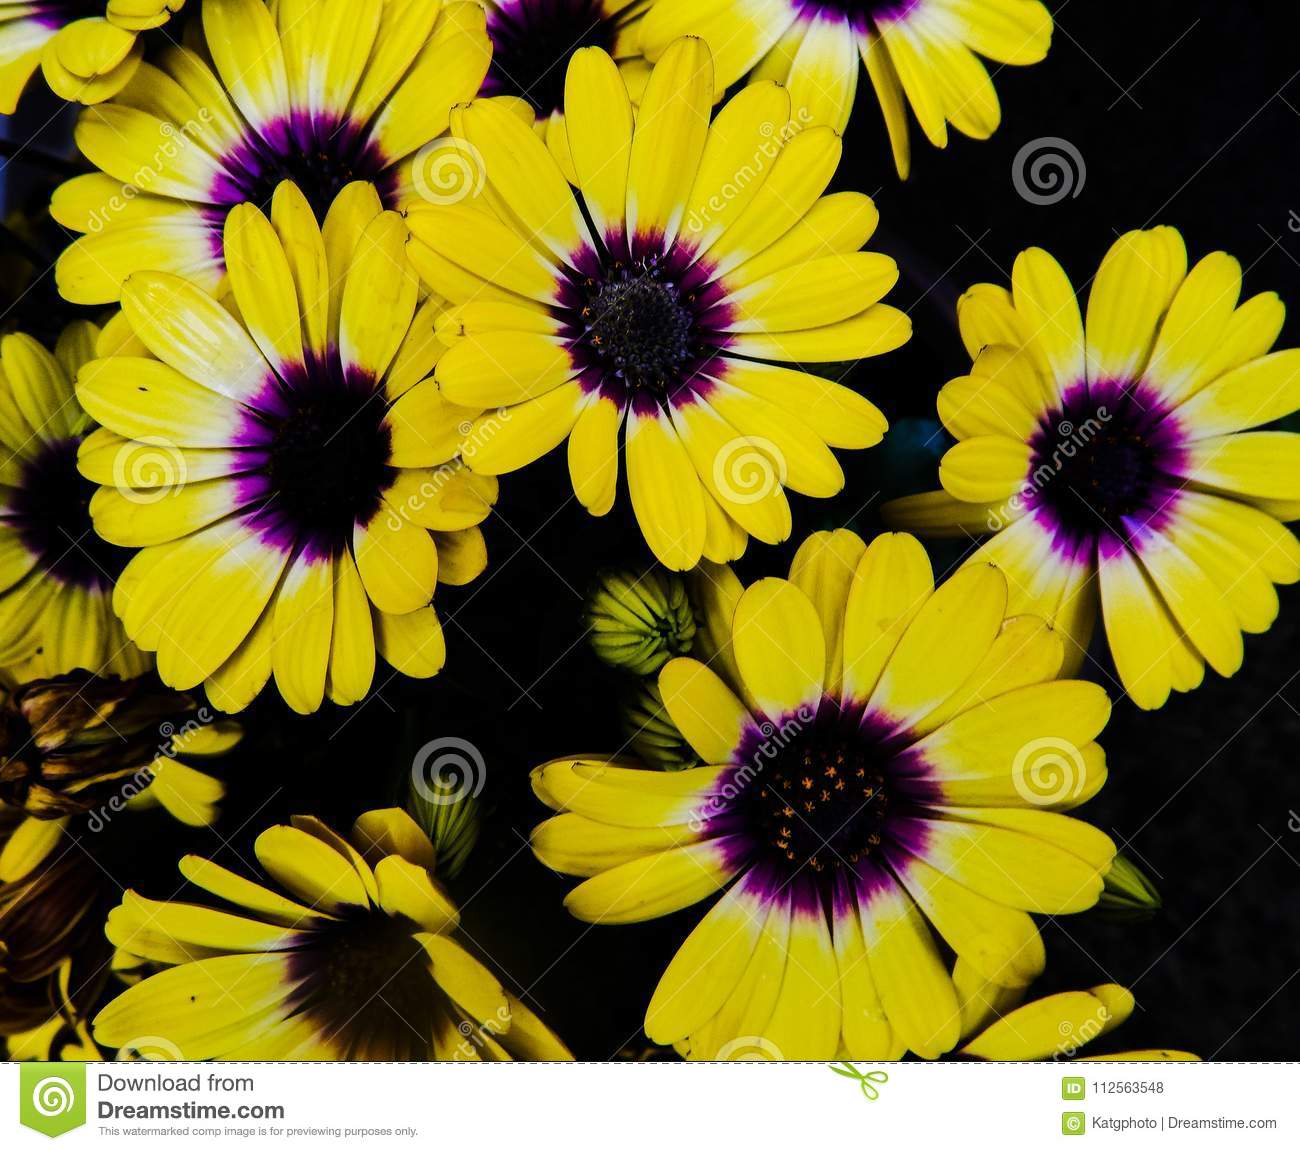 Bright Yellow And Purple African Daisies Against A Black Background